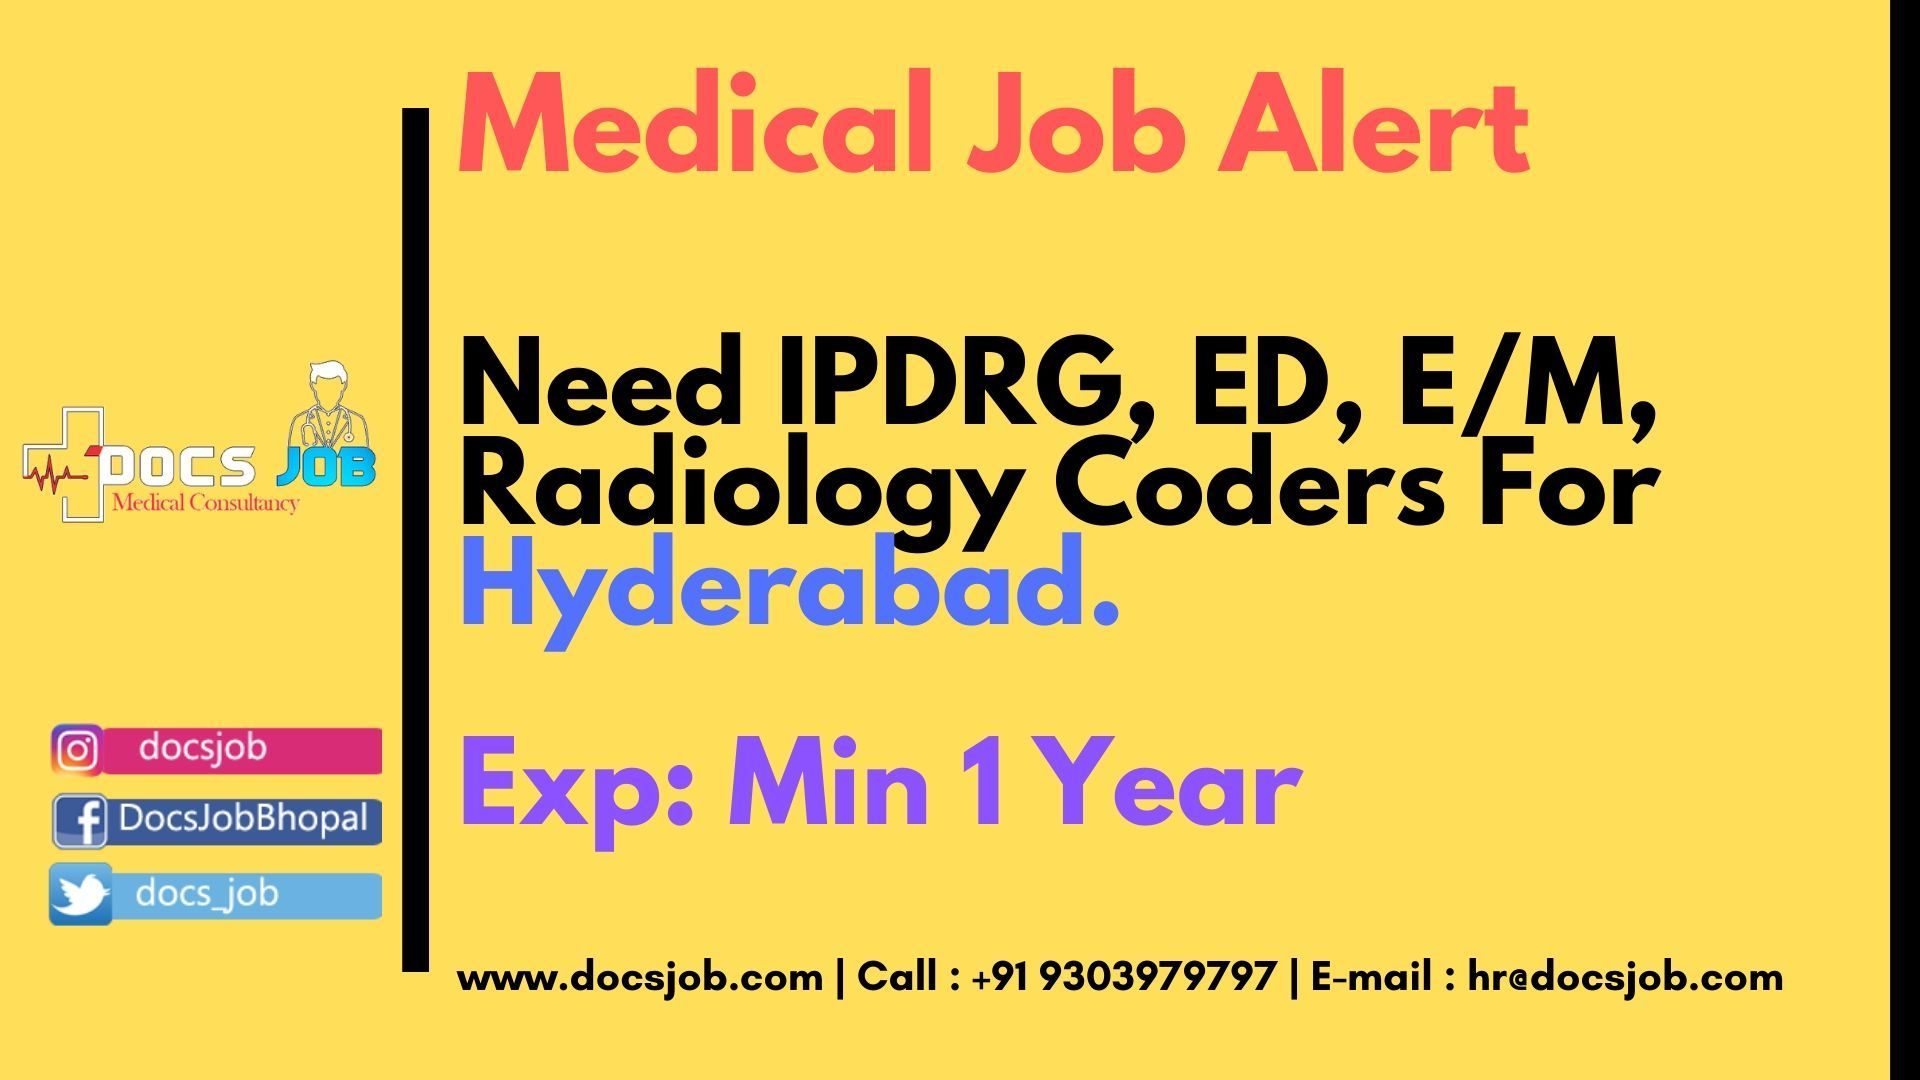 Need IPDRG, ED, E/M, Radiology coders for Hyderabad